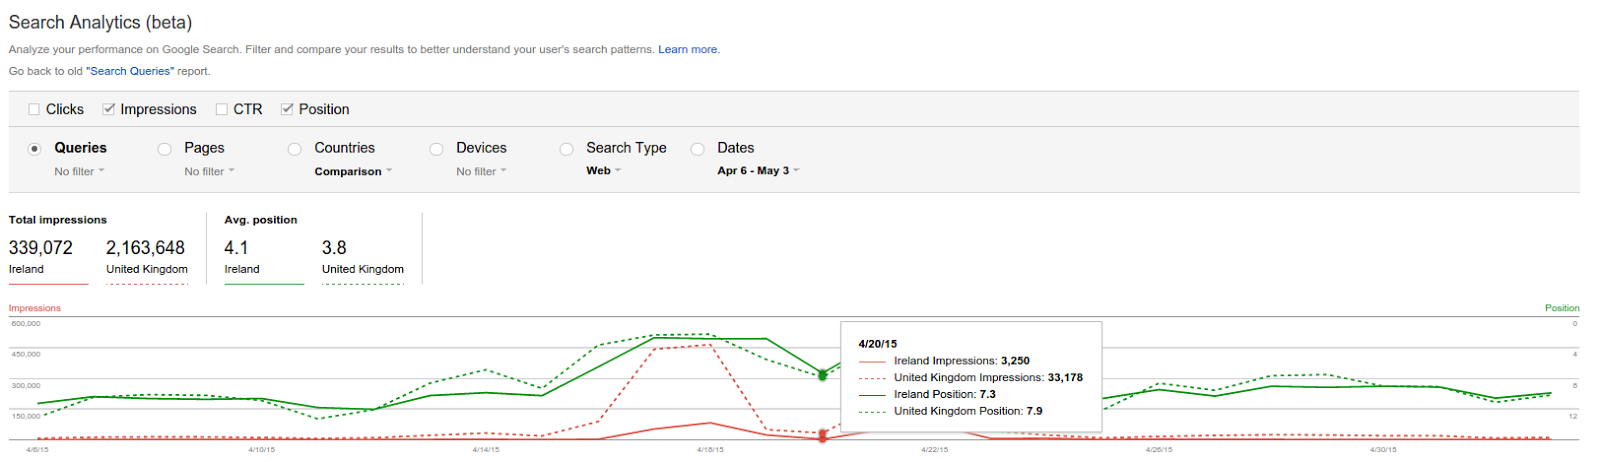 search analytics 2